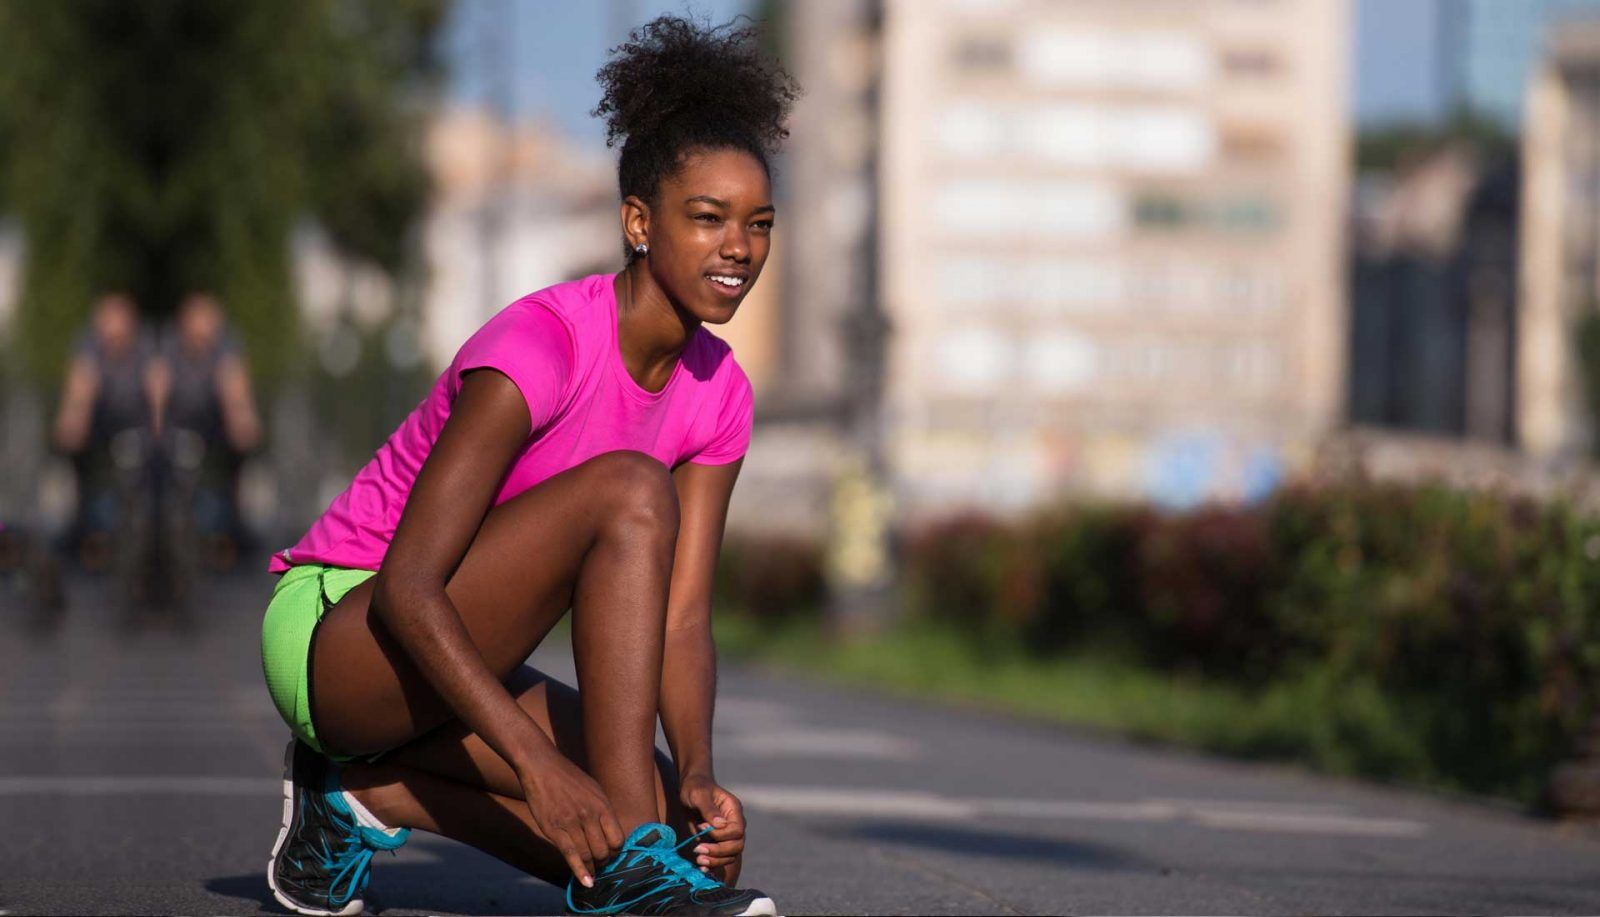 Black woman with natural protective hairstyle preparing for a run